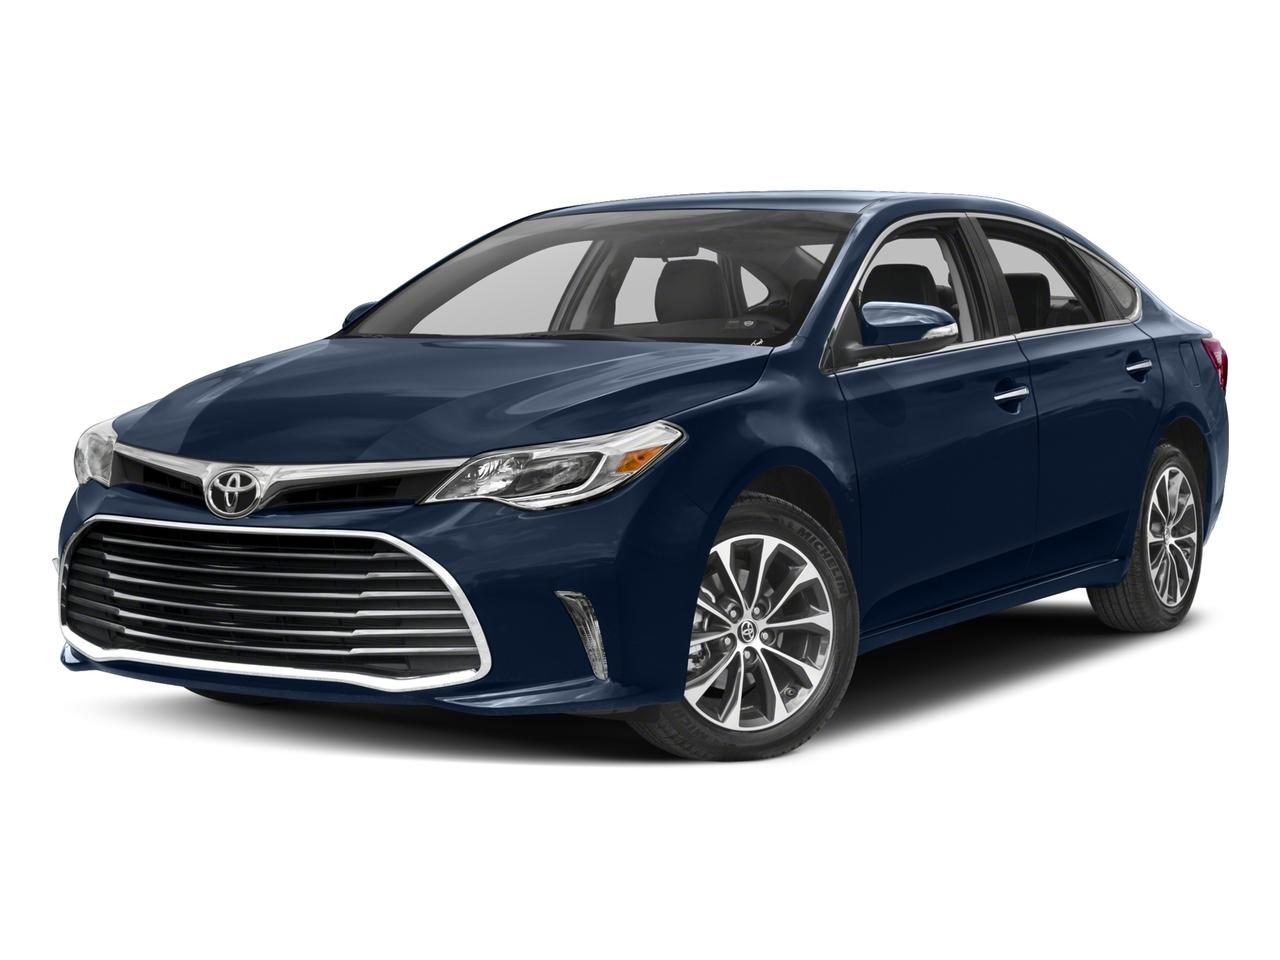 2018 Toyota Avalon Vehicle Photo in Baton Rouge, LA 70809